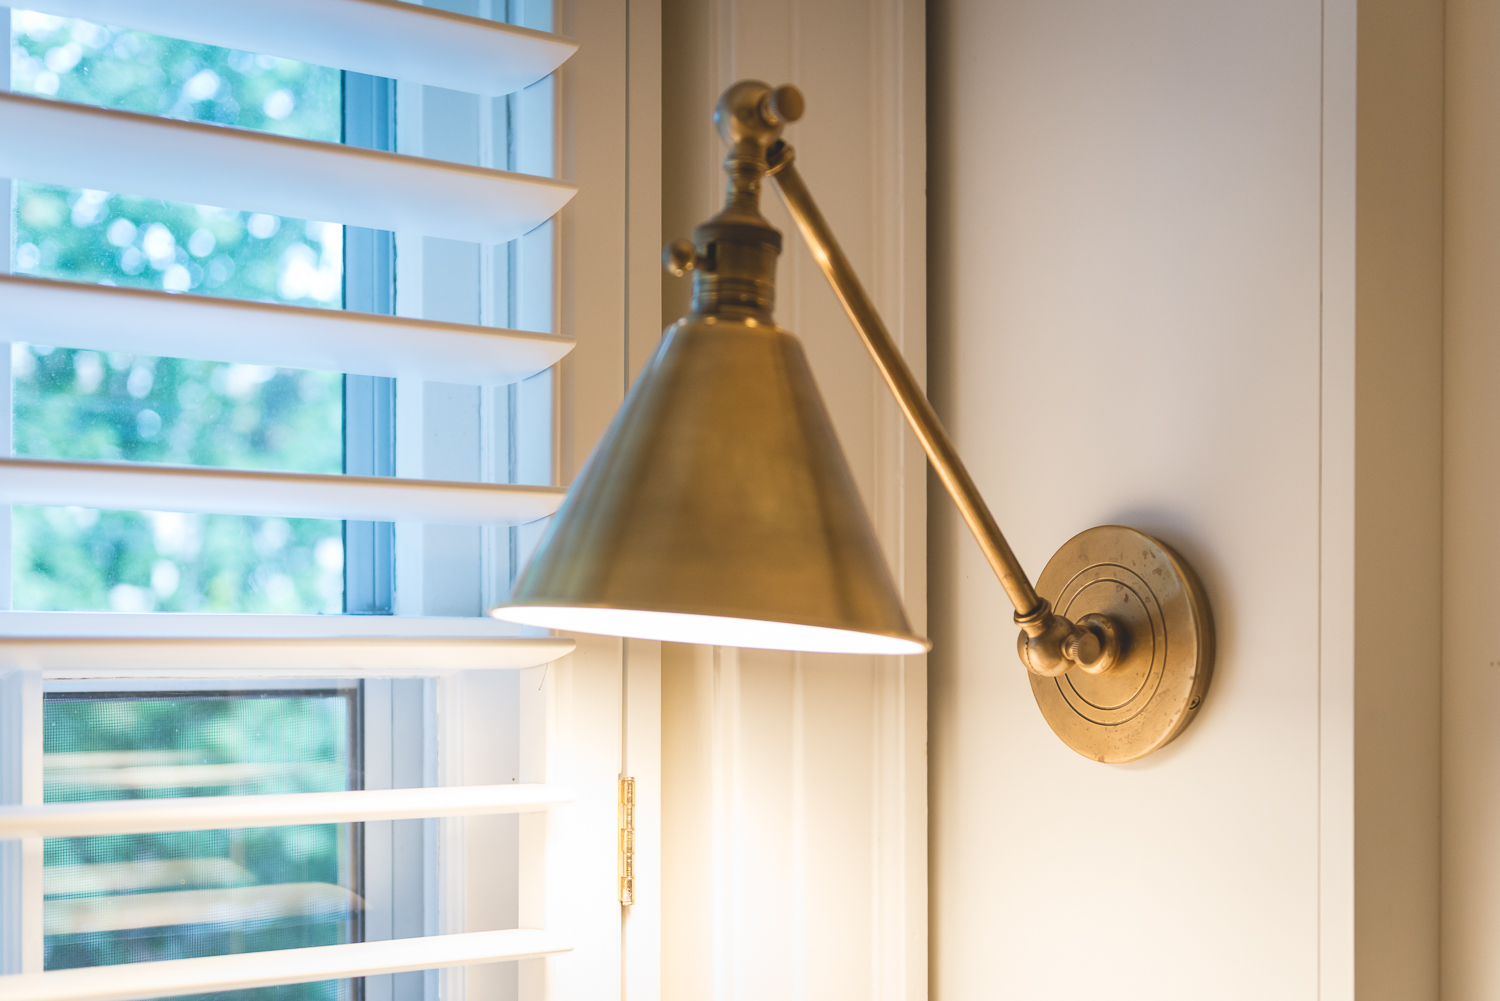 To add sconces we had to build out the sides of the bookshelves but the result was worth it for a clean contemporary lighting solution. www.saranobledesigns.com